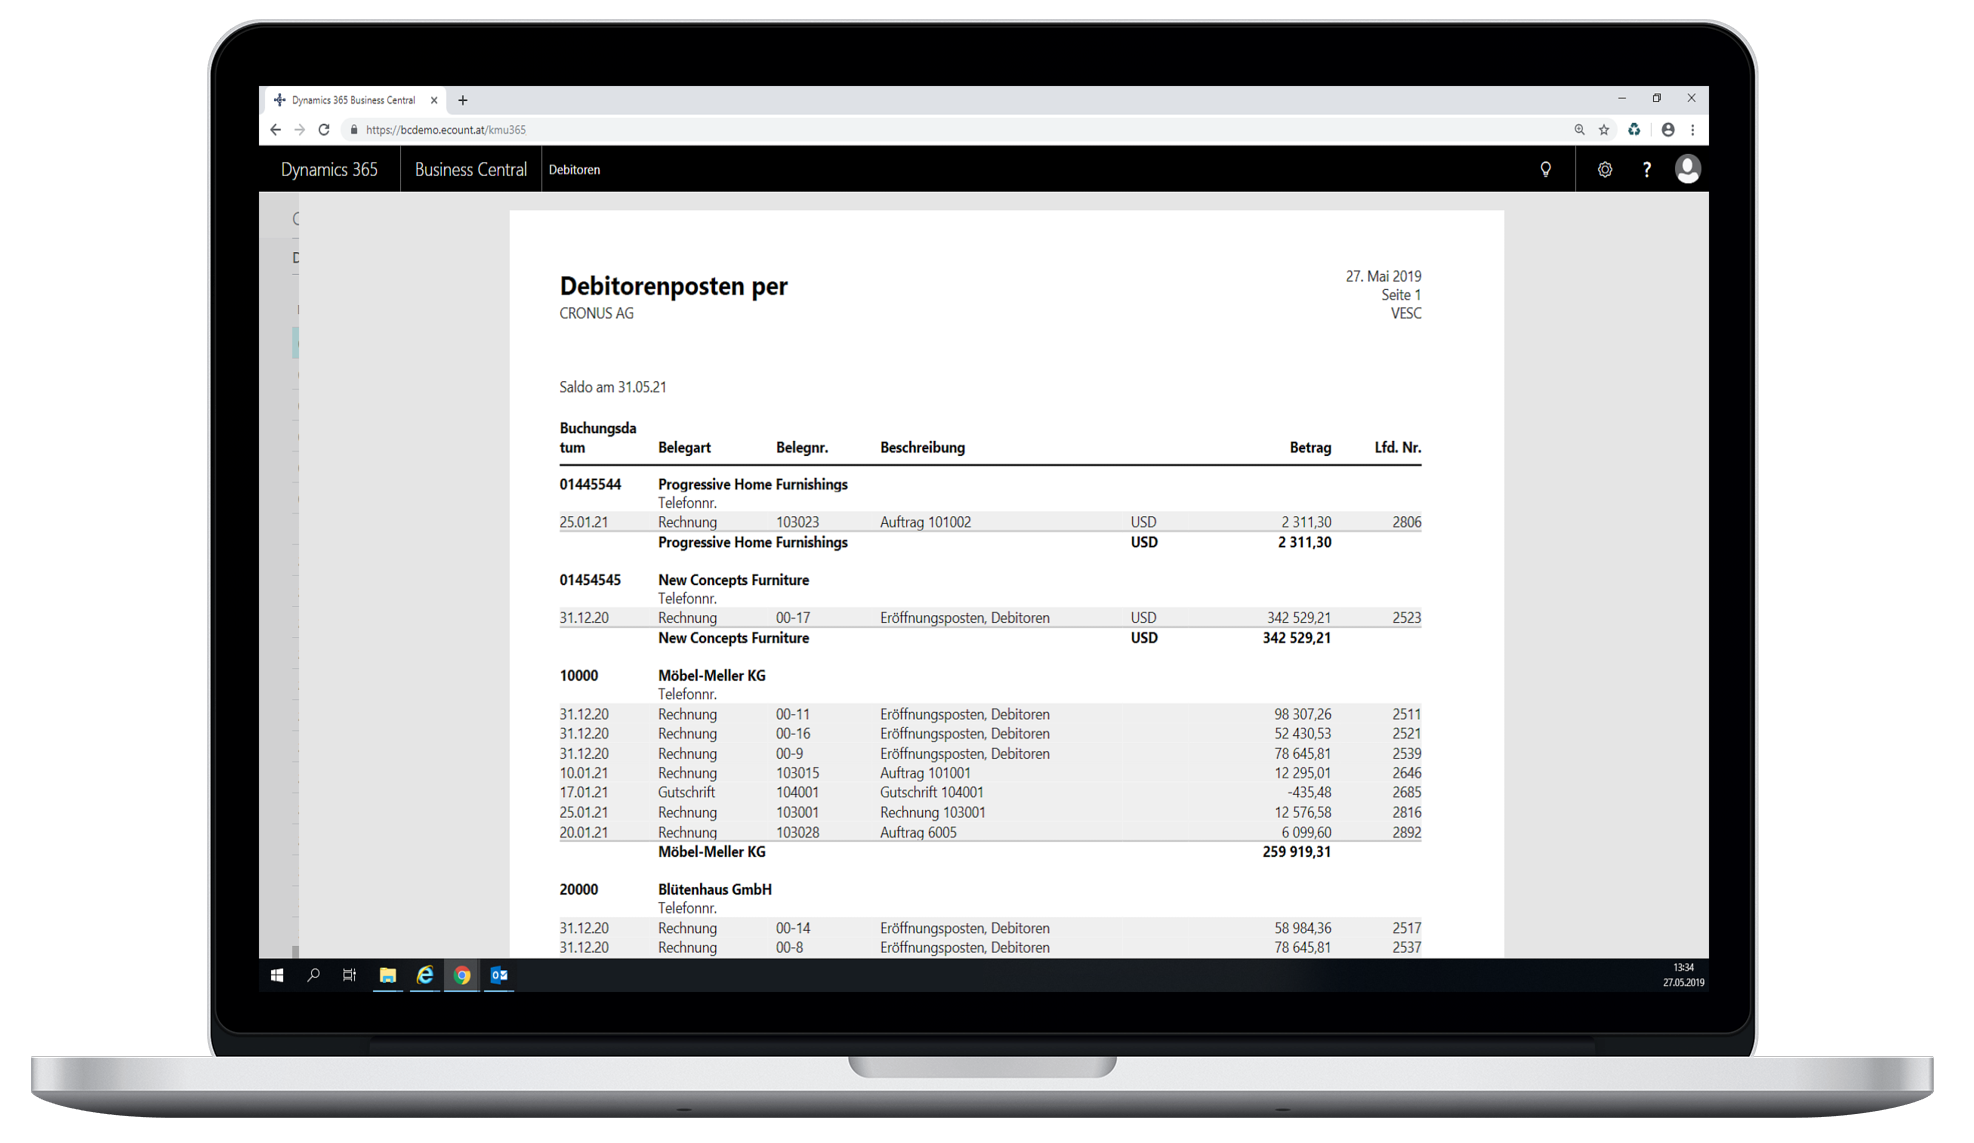 Debitorenbericht - eCOUNT Dynamics 365 Business Central